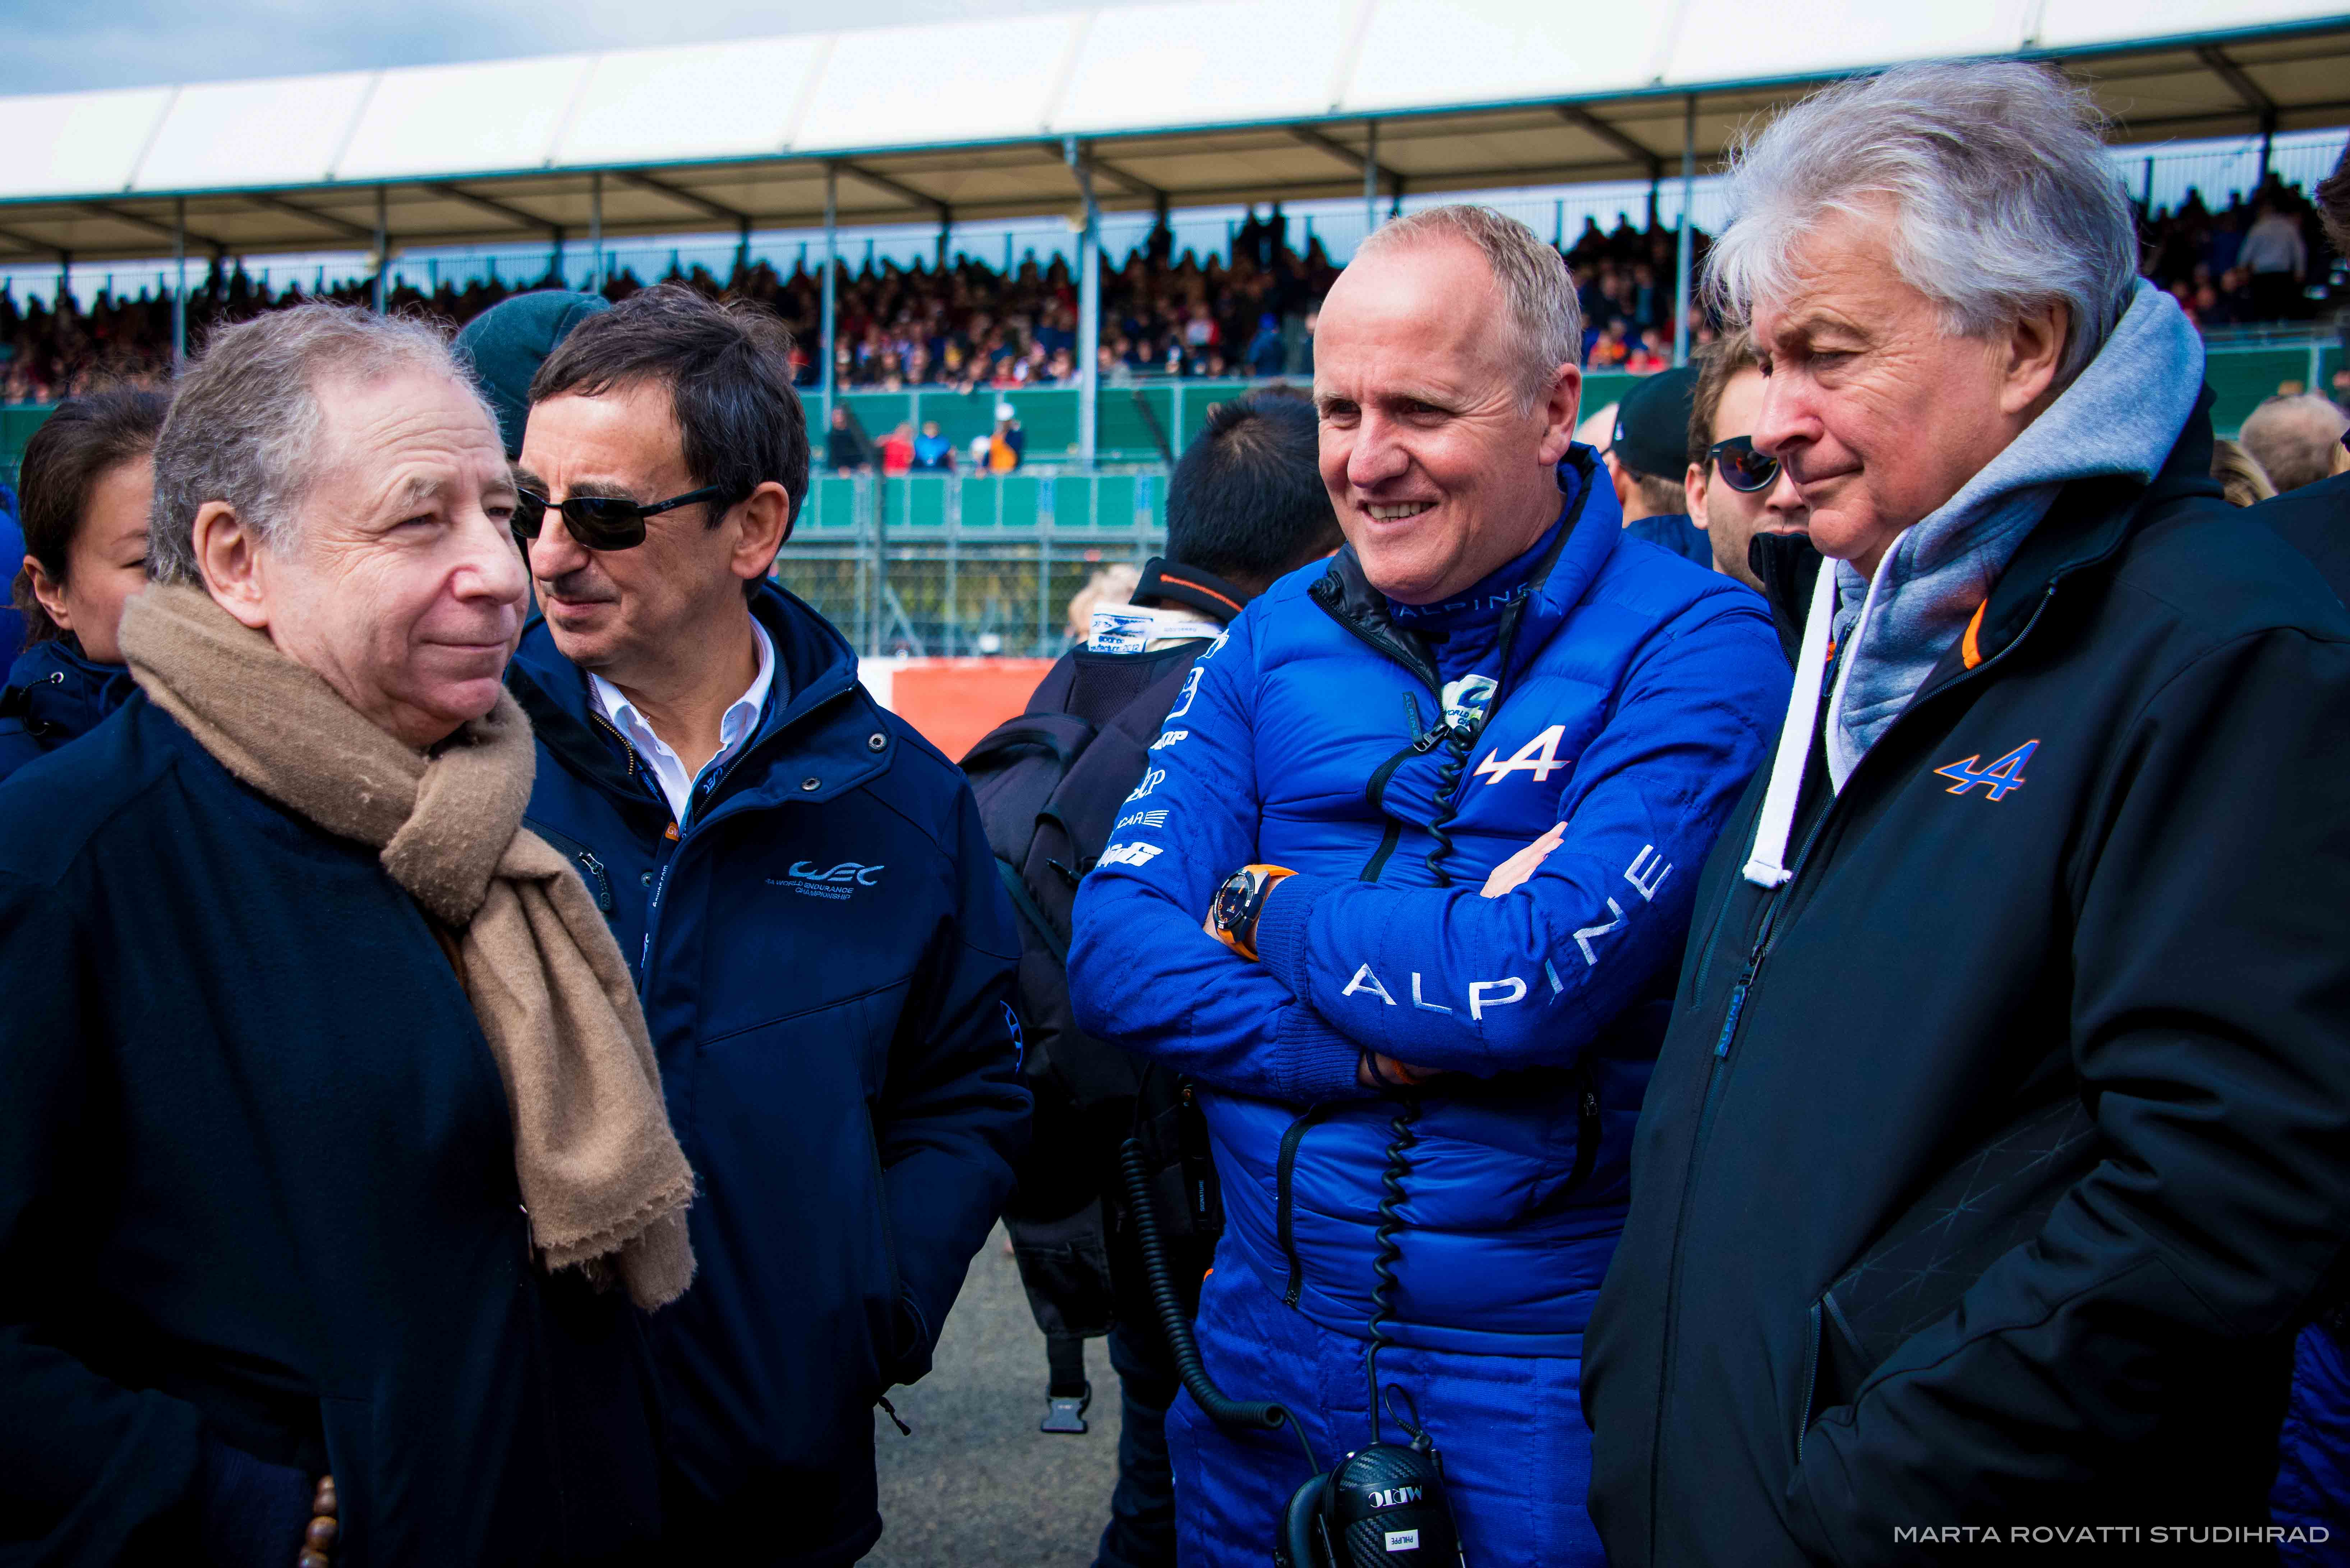 Spacesuit-Media-Marta-Rovatti-Studihrad-FIA-Formula-E-Marrakesh-ePrix-November-2016MGR_9351